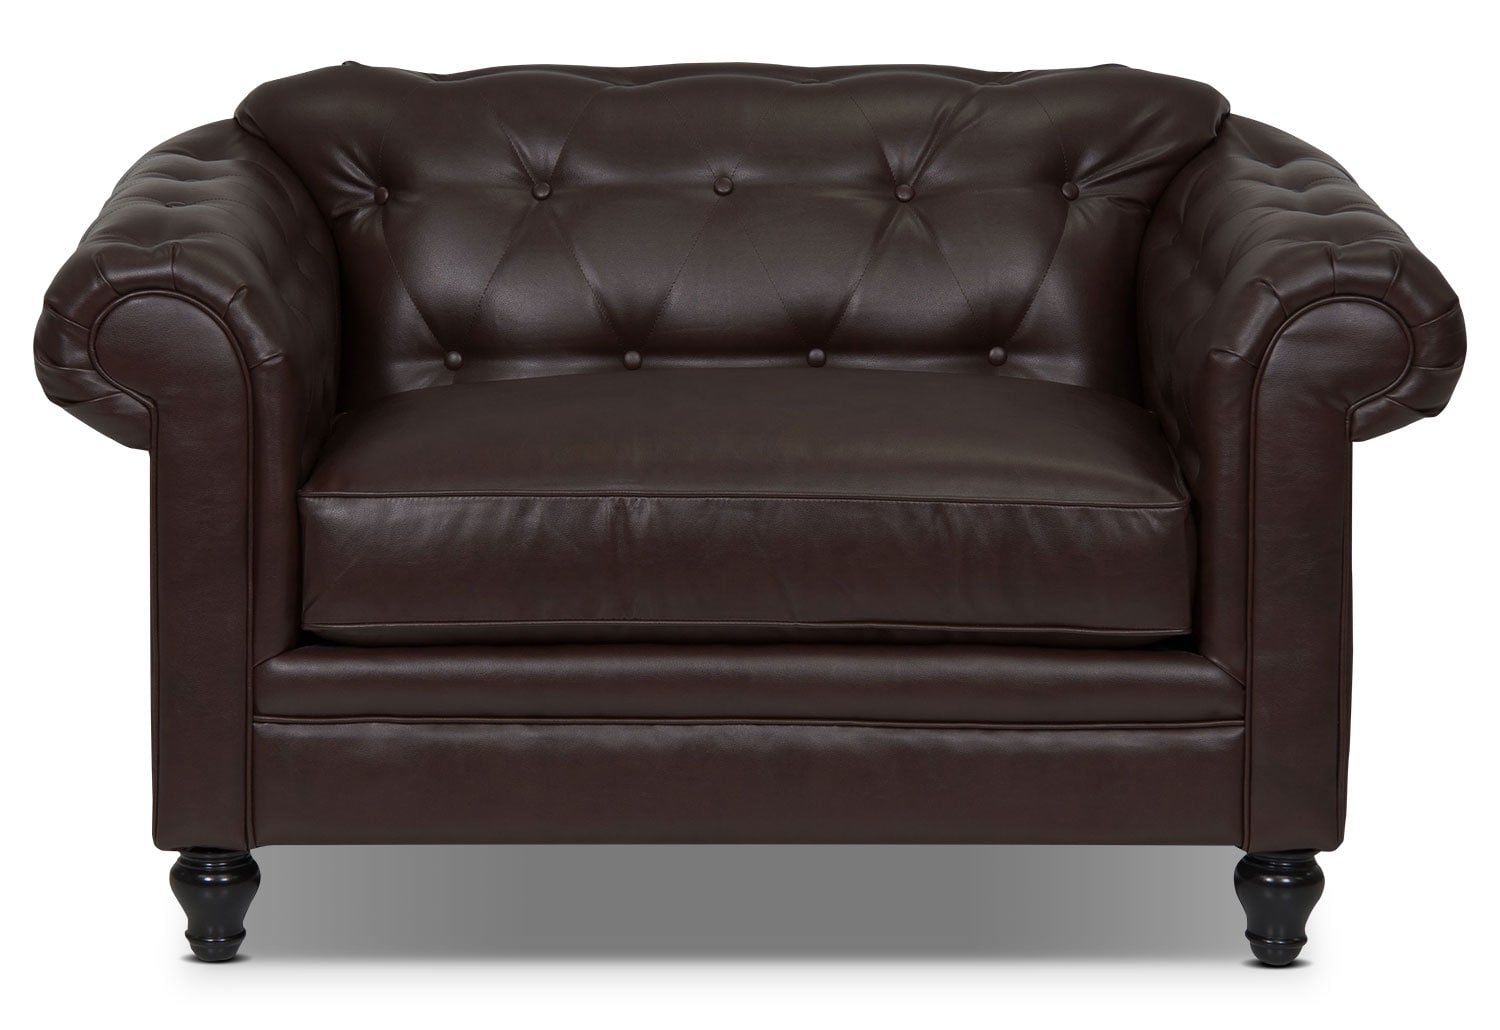 Living Room Furniture - Julia Bonded Leather Chair-and-a-Half - Cognac